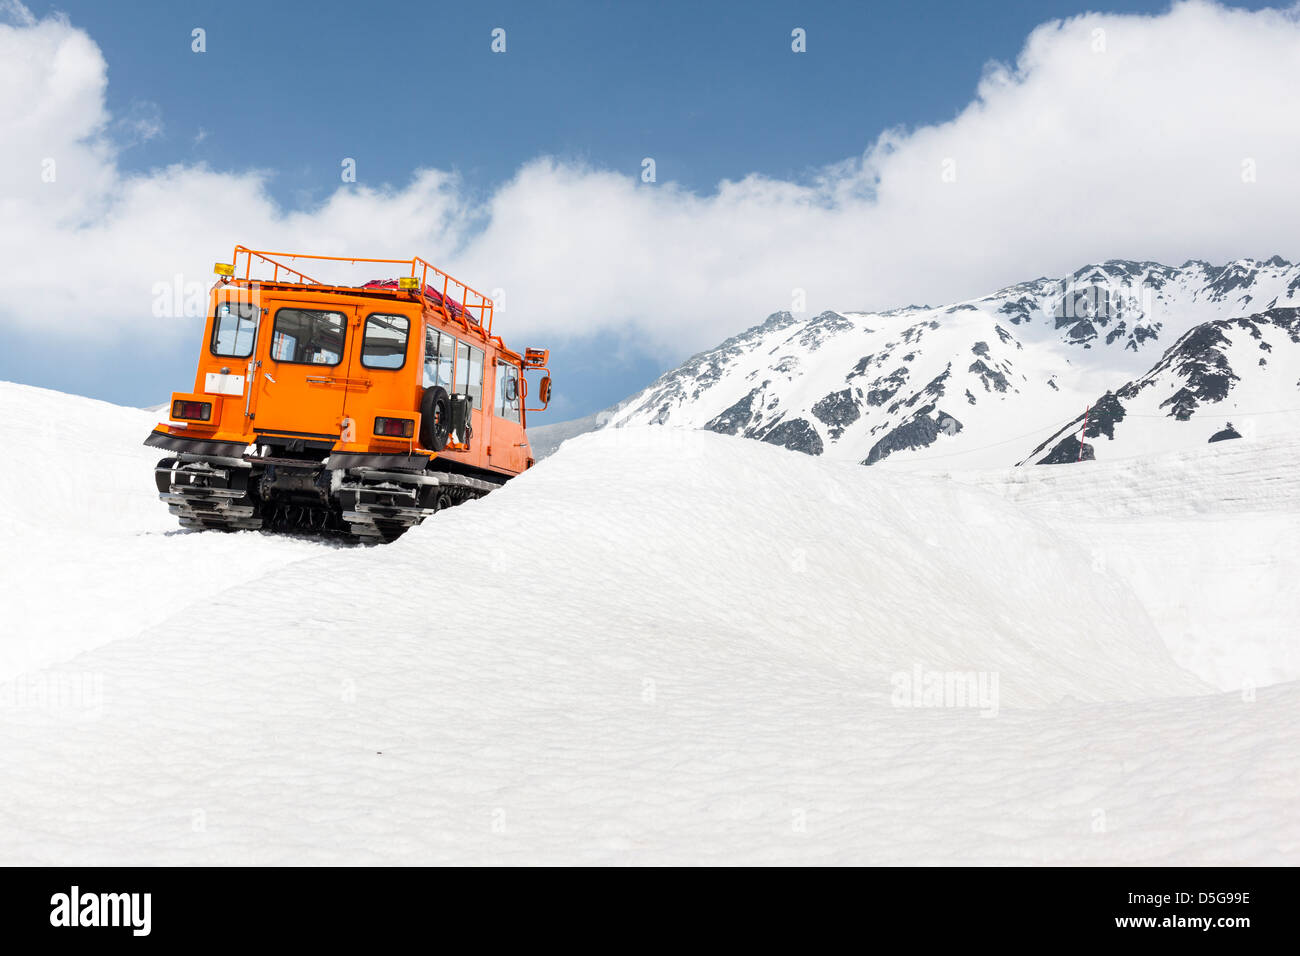 Back view of a mountain rescue vehicle with caterpillar tracks on a snow-capped mountain - Stock Image